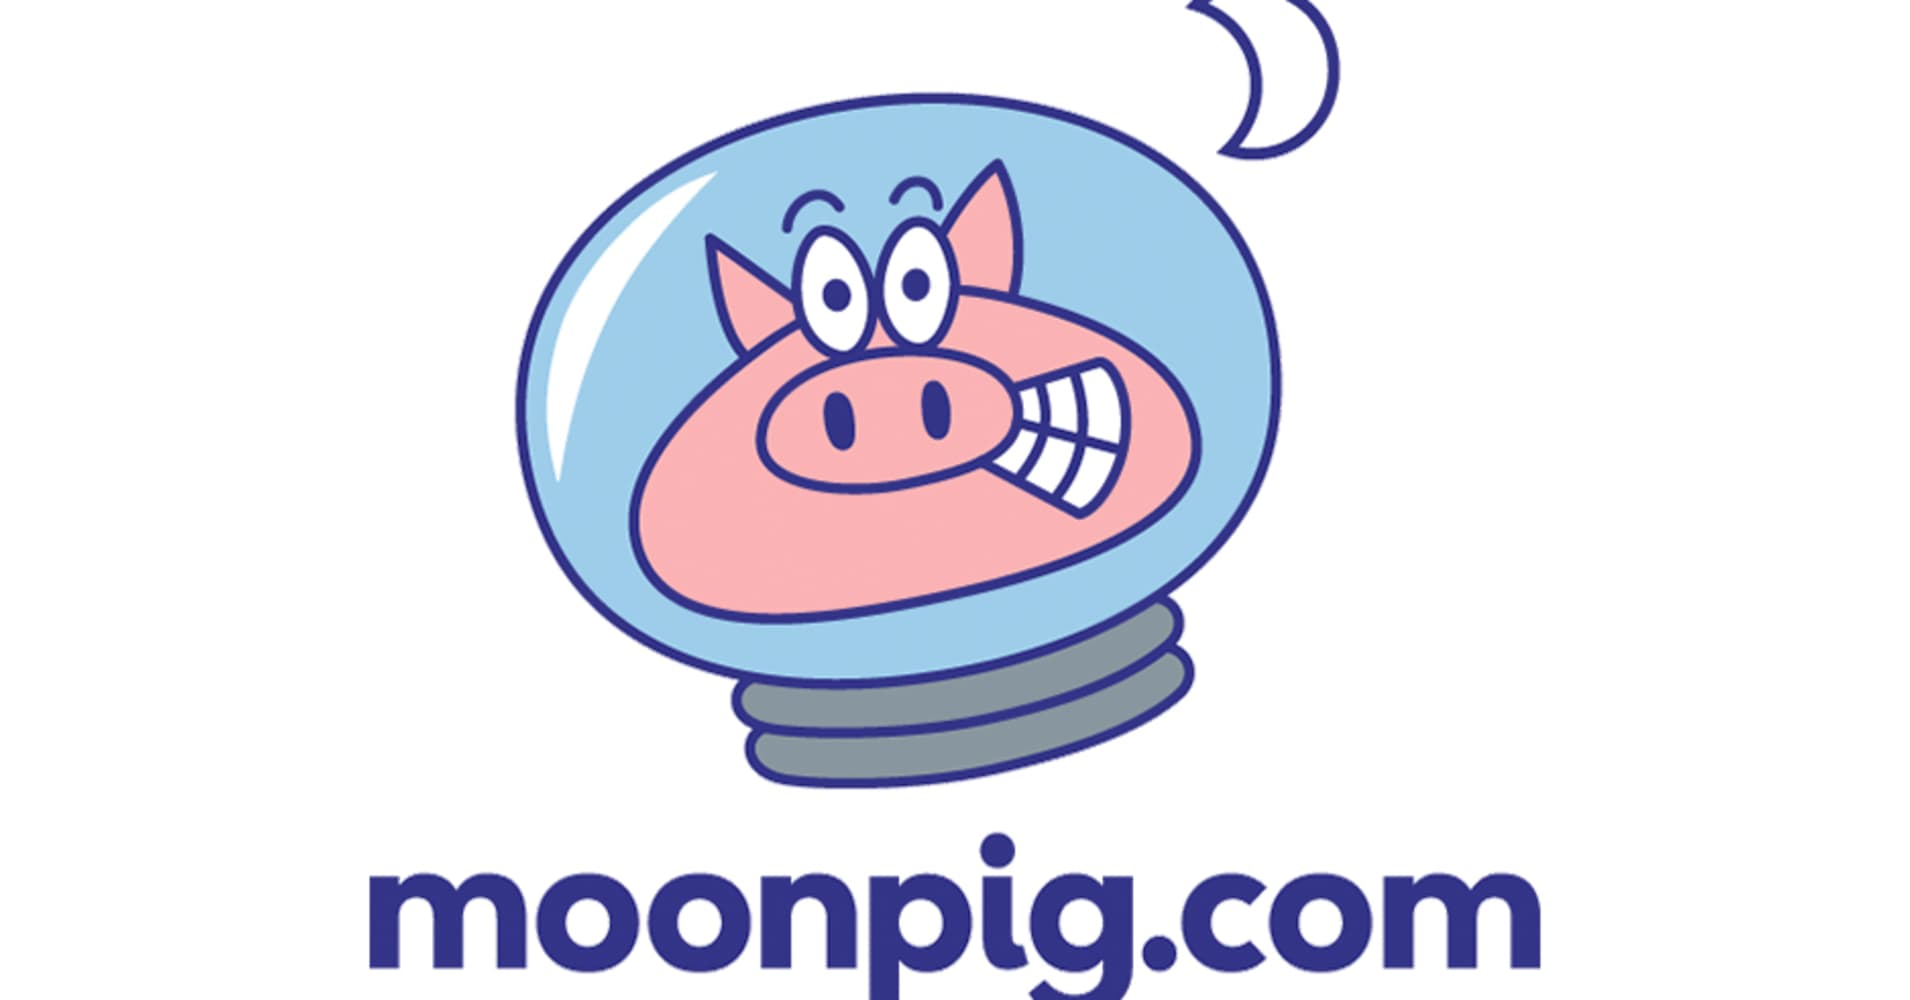 Moonpig's users' details at risk from security flaw in app